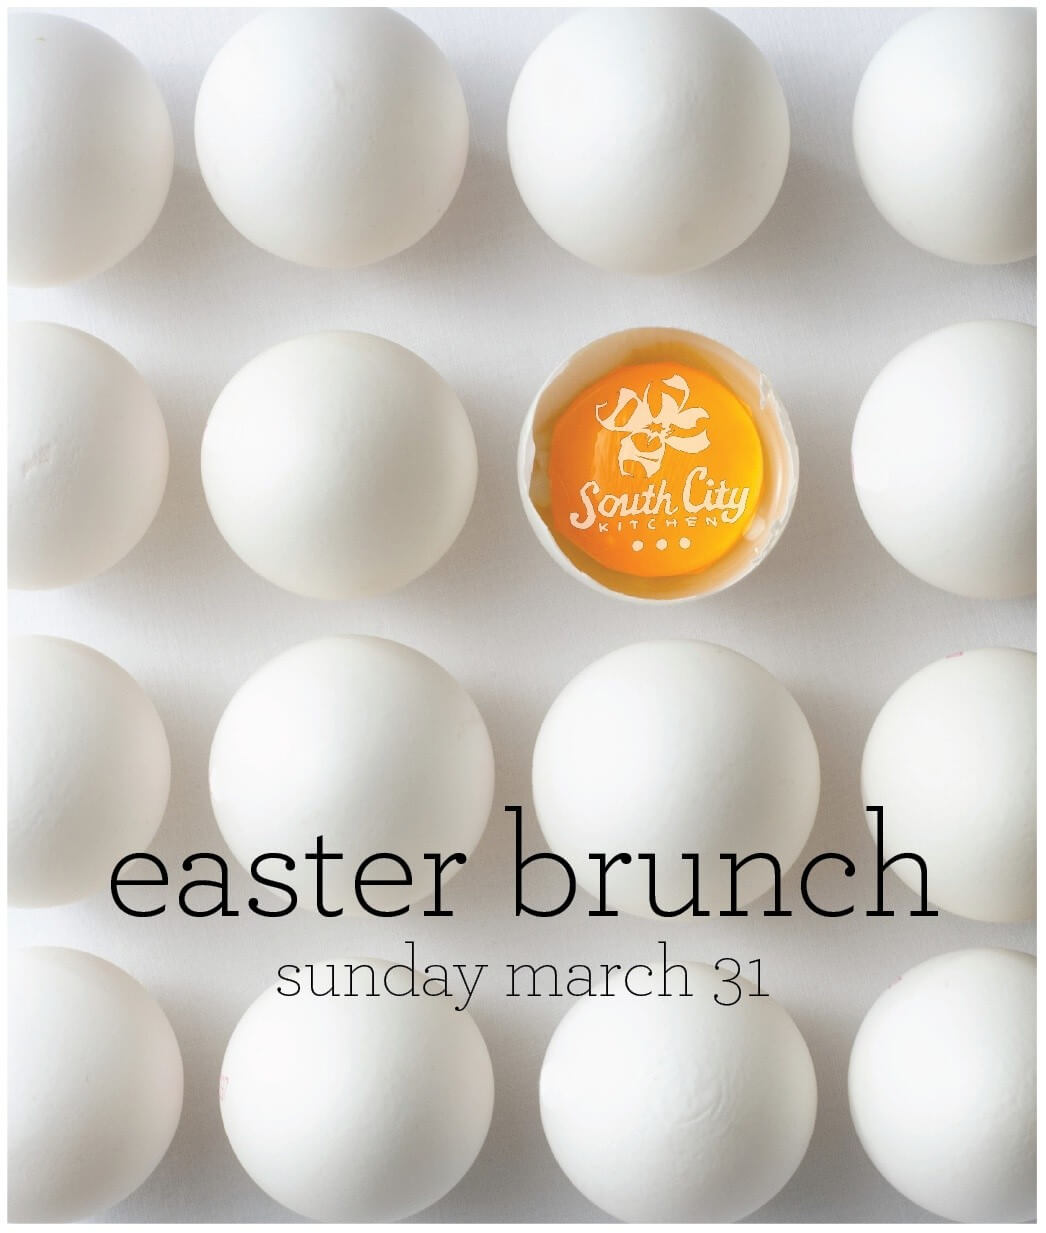 Easter Brunch at South City Kitchen